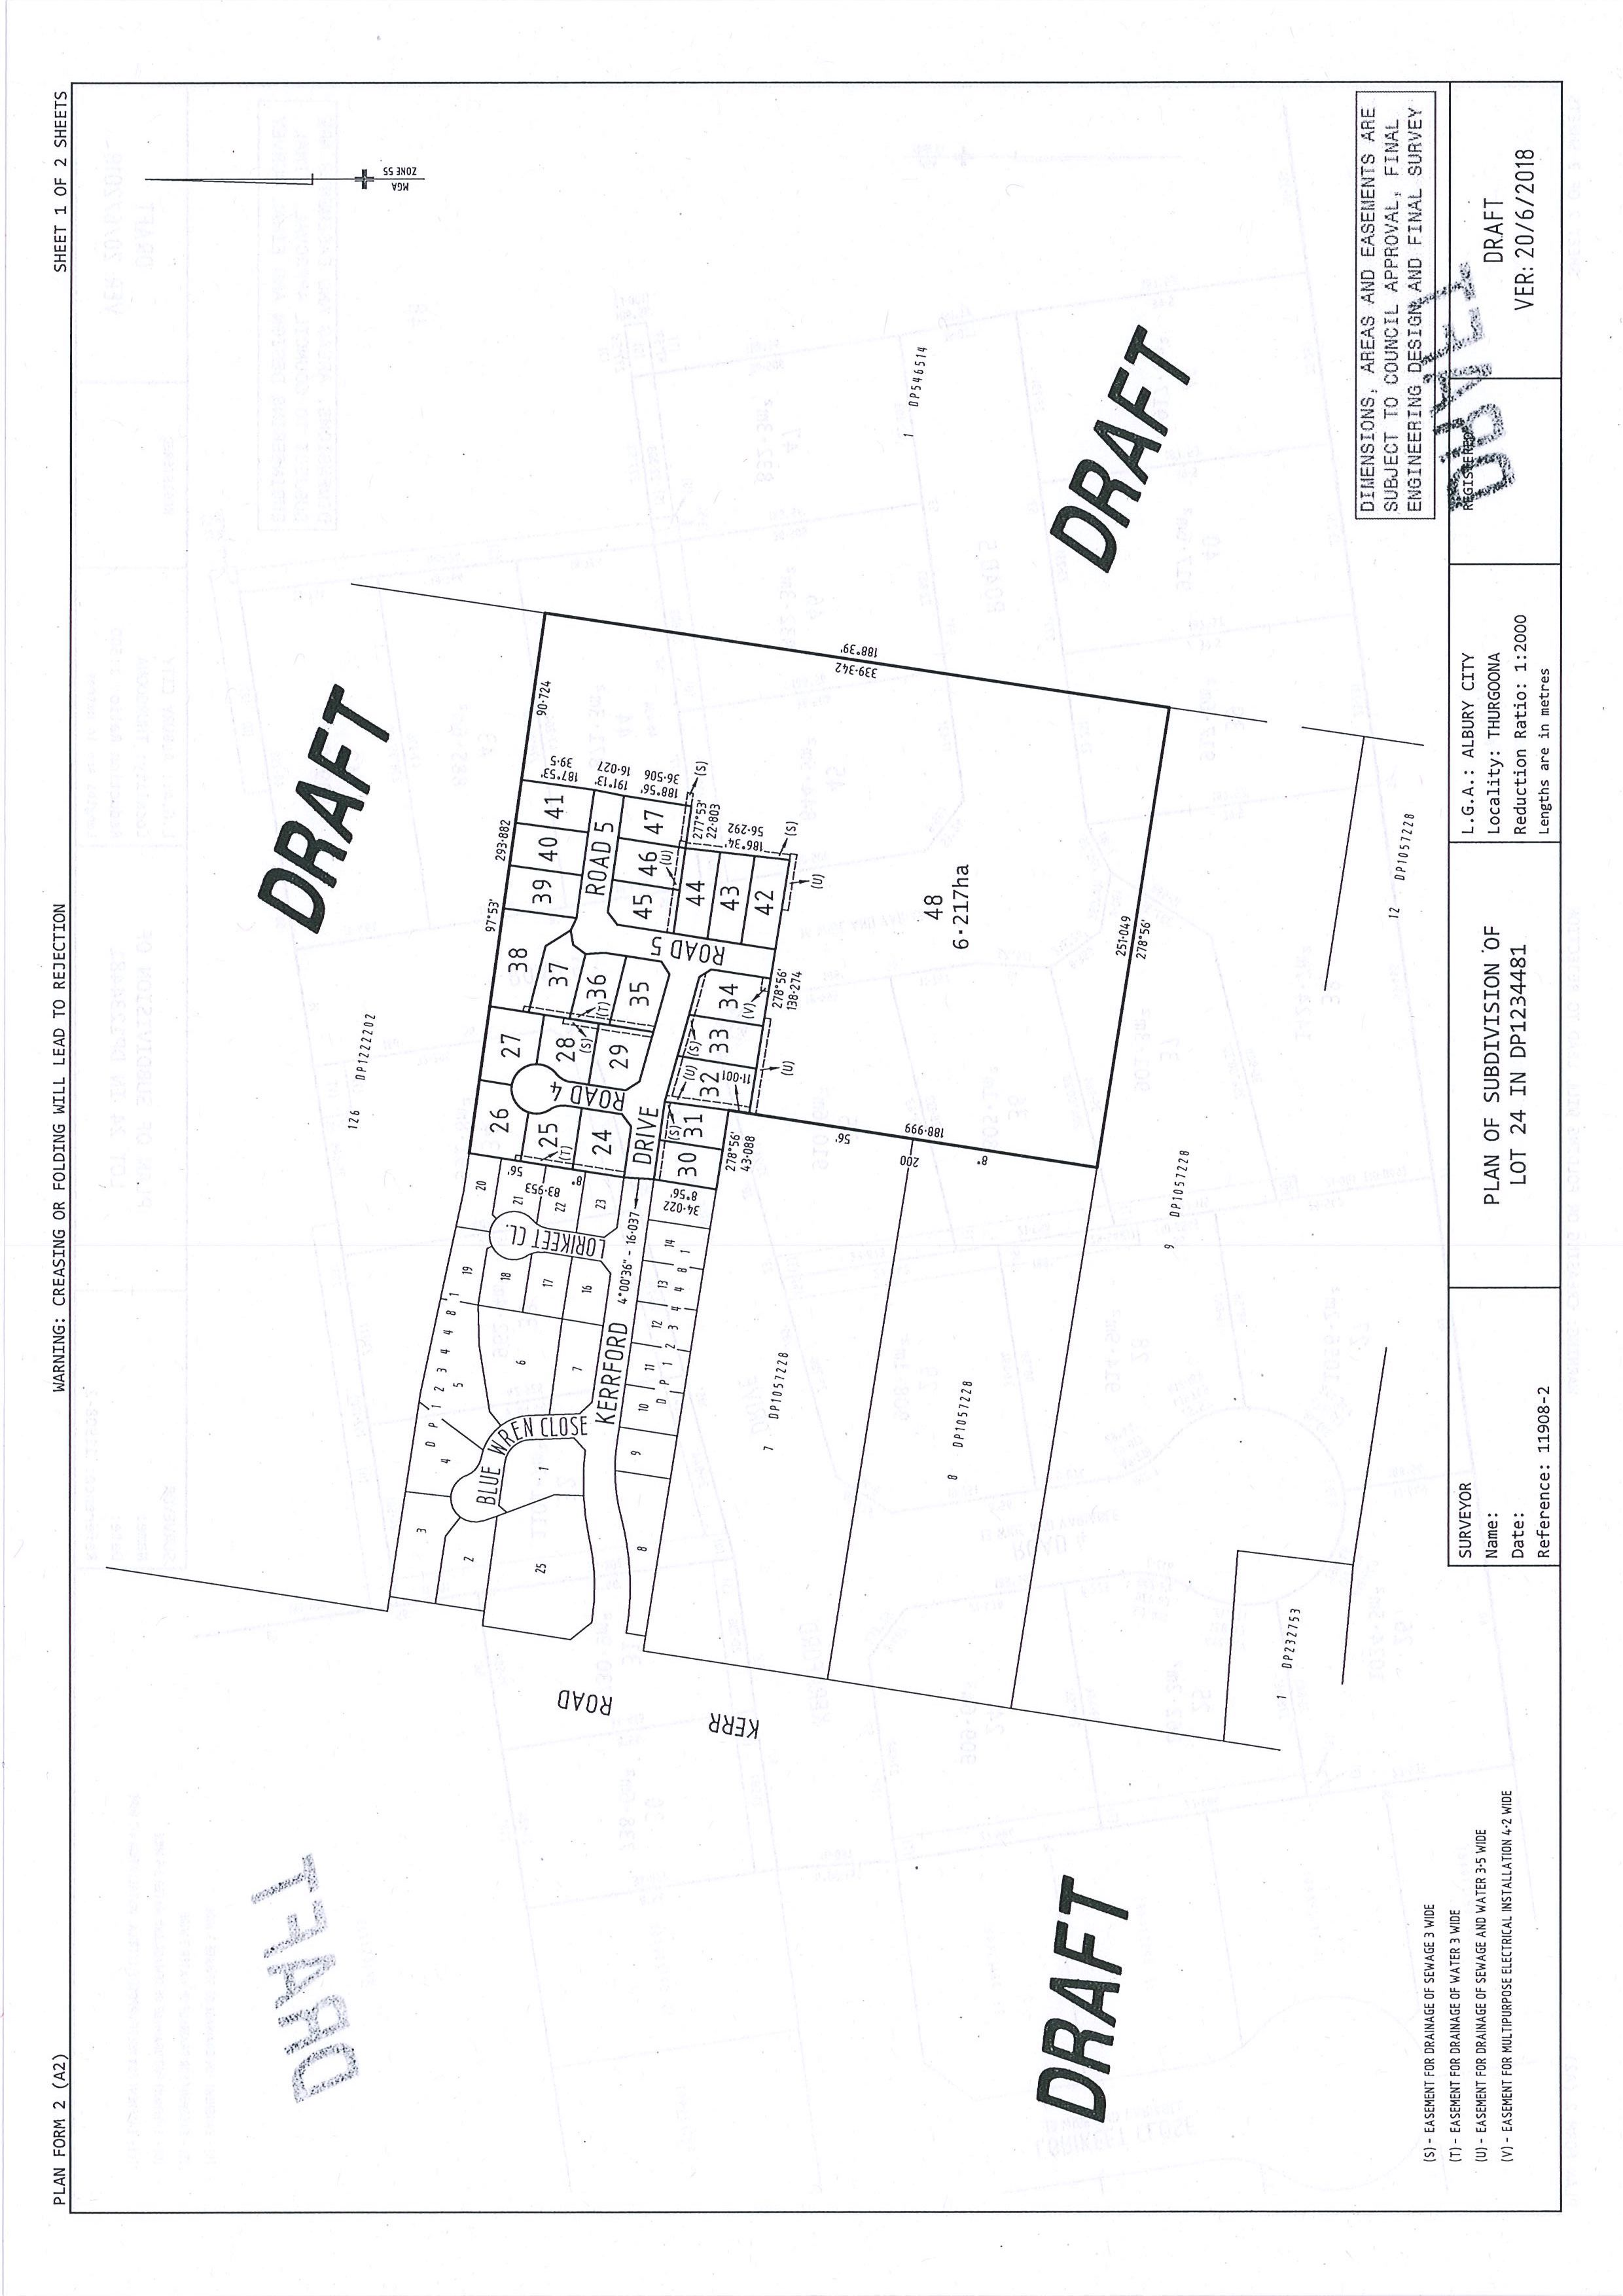 Kerrford-Stage-34-Draft-Plan-of-Subdivision_Page_2.jpg